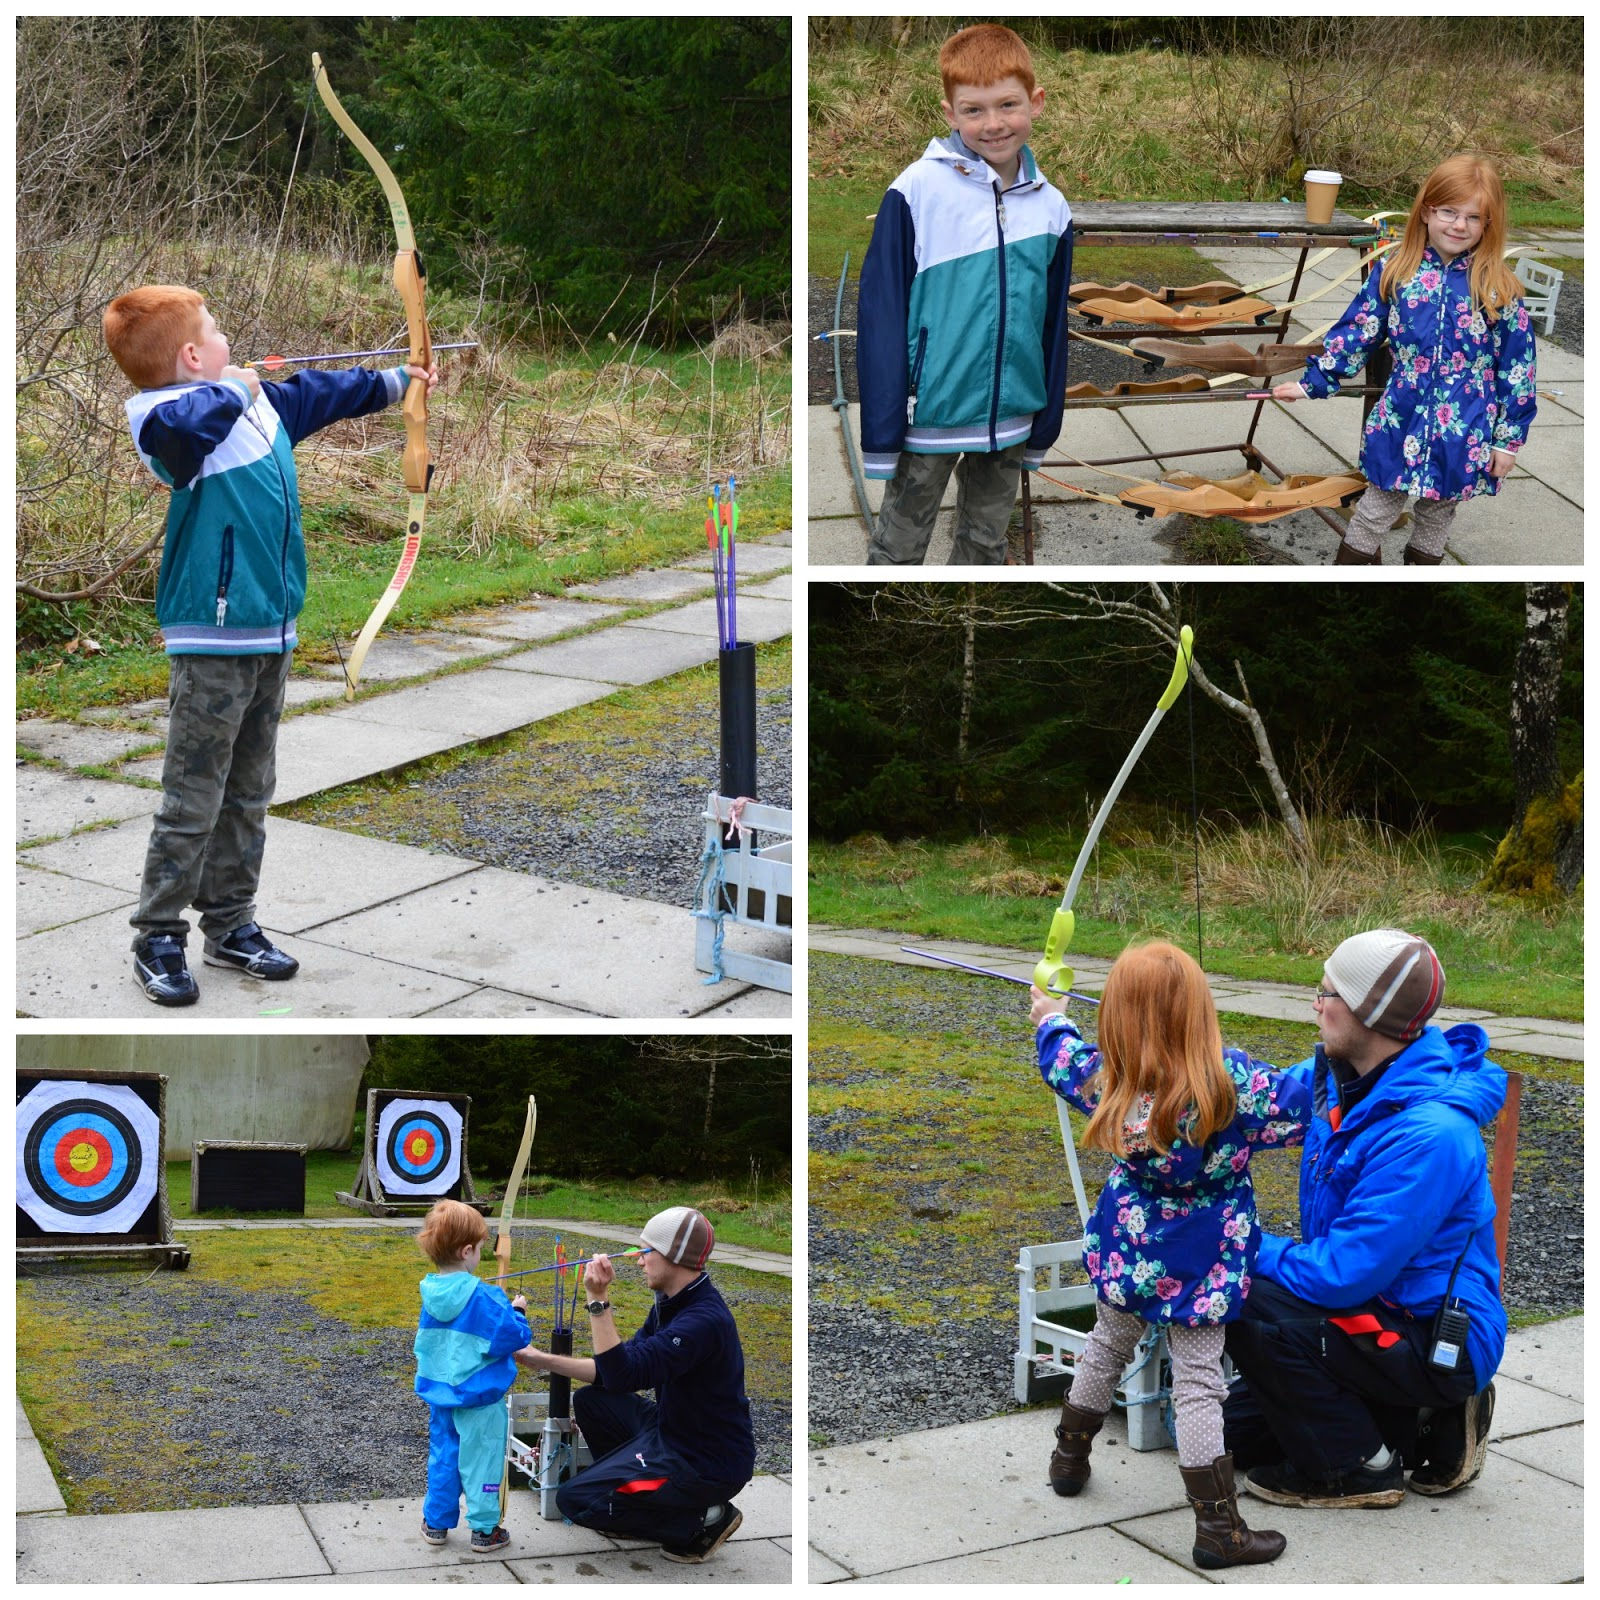 Children's archery at The Calvert Trust, Kielder - A review